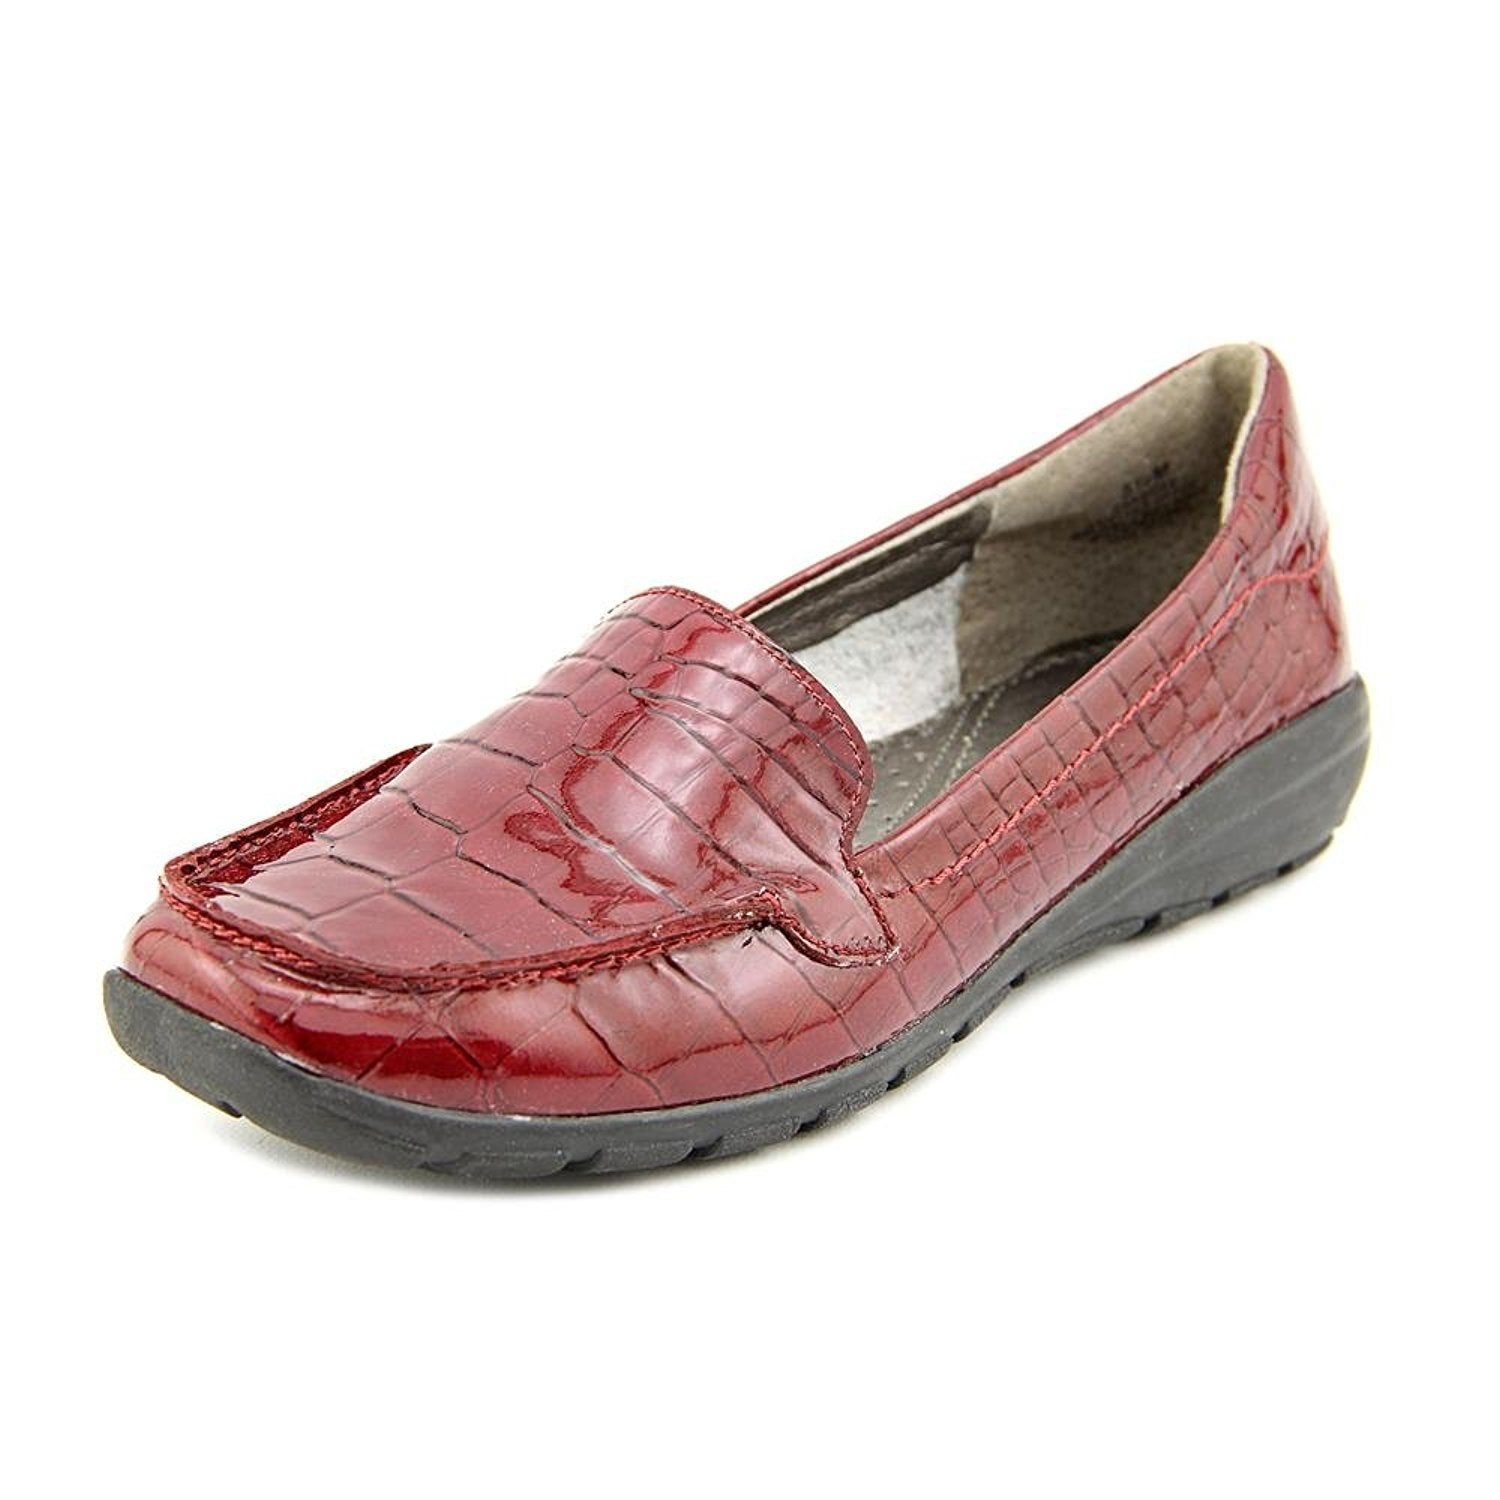 0b7b83a915e Shop Easy Spirit Womens Abide Leather Square Toe Loafers - Free Shipping On  Orders Over  45 - Overstock - 14528425